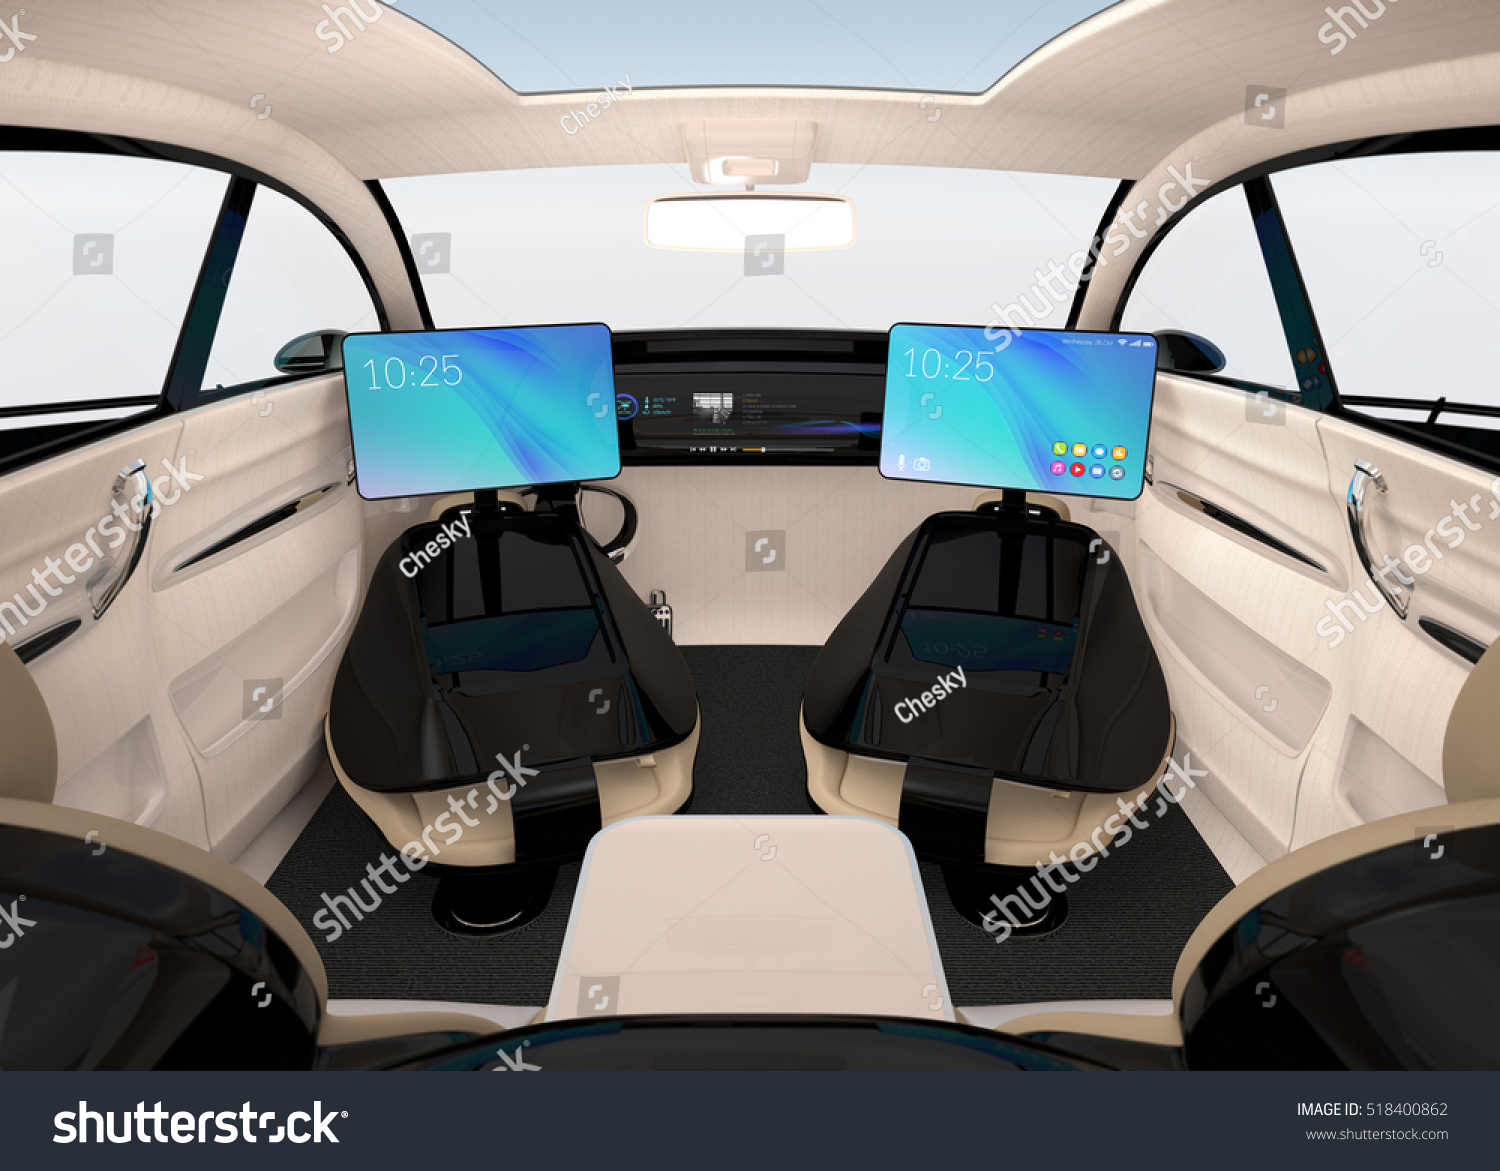 Autonomous Car Interior Design Concept For New Business Work Style When Moving On The Road